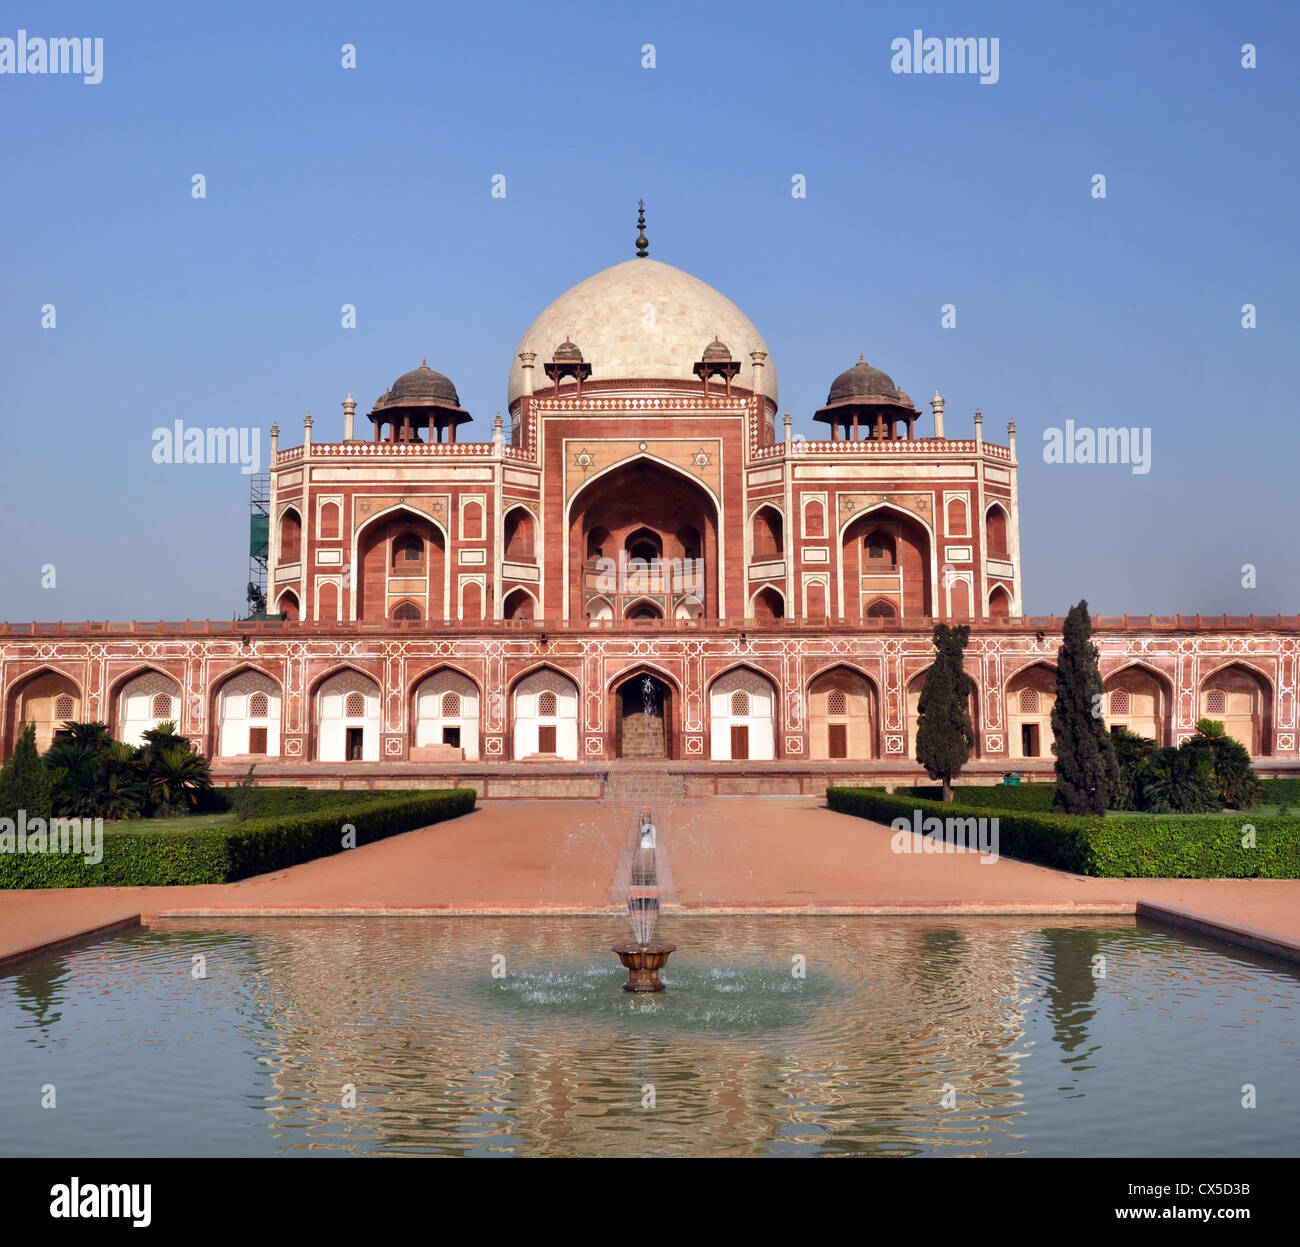 Vertical Panoramic view of Humayun's Tomb - one of the most famous Mughal buldings in New Delhi, India - Stock Image